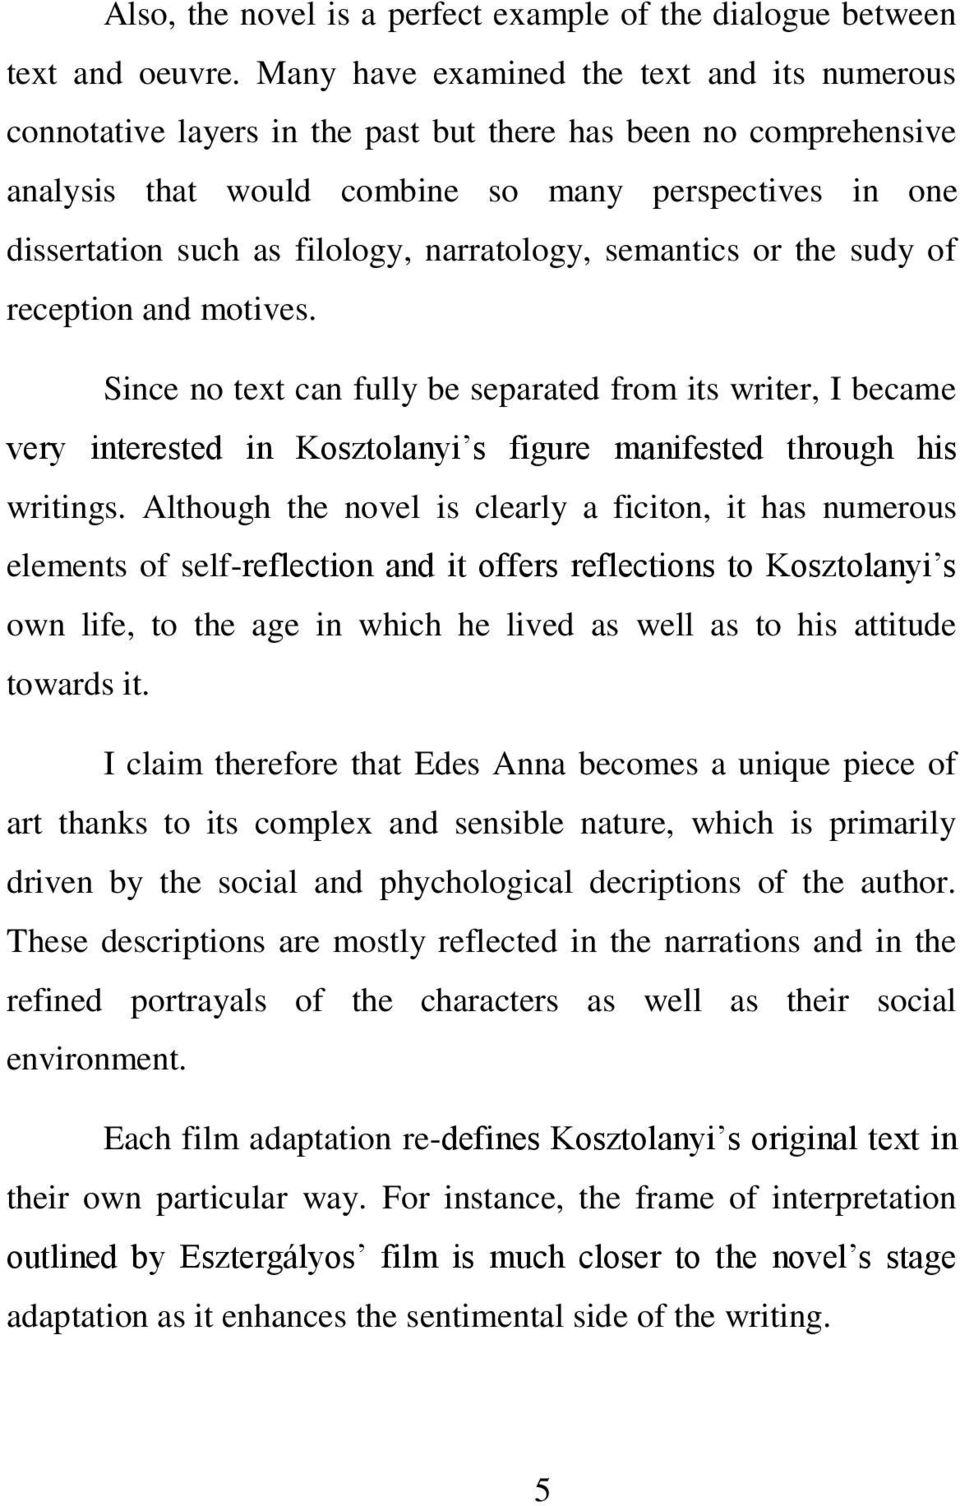 narratology, semantics or the sudy of reception and motives. Since no text can fully be separated from its writer, I became very interested in Kosztolanyi s figure manifested through his writings.